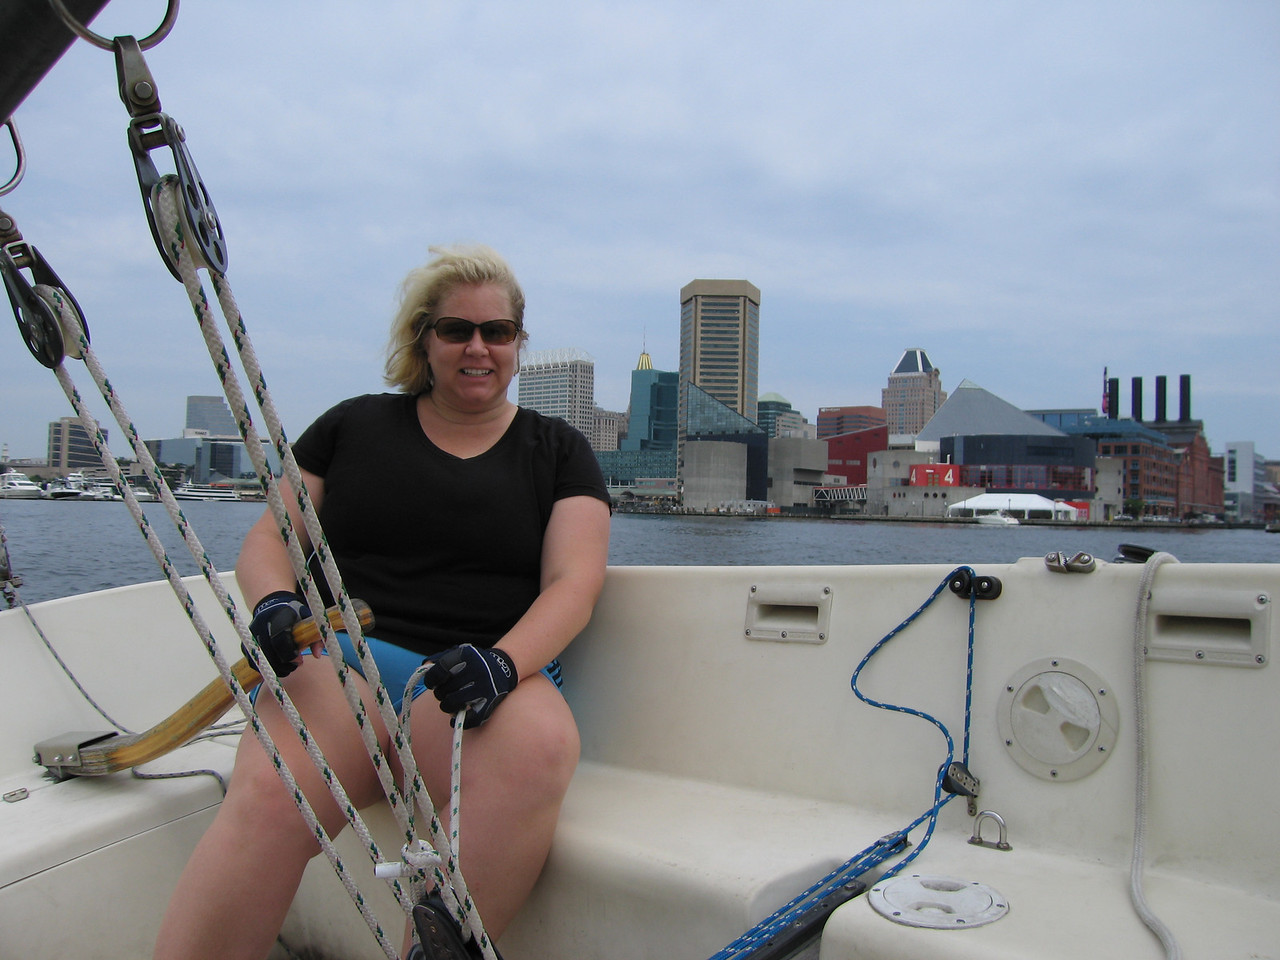 Jen, with Baltimore in the background